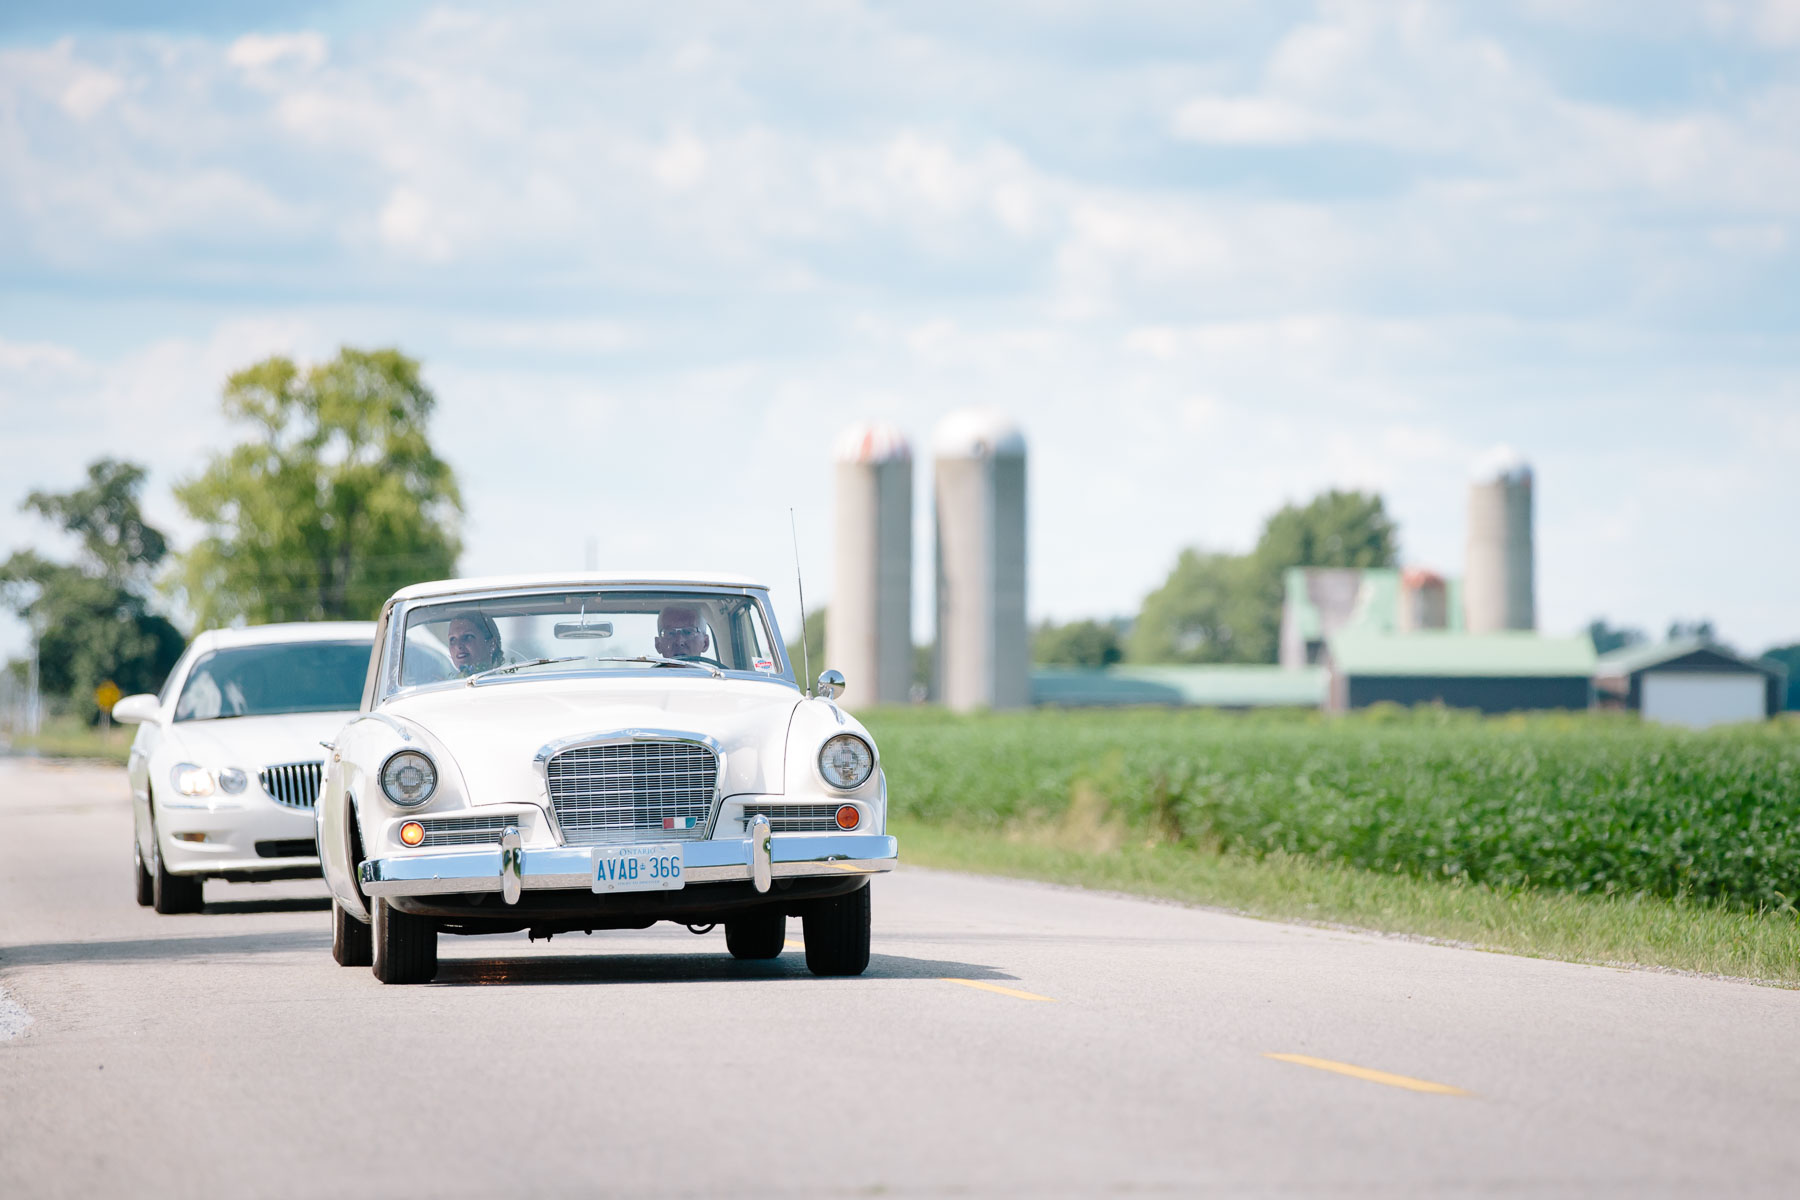 Bride and her father arriving in his white 1963 Studebaker Gran Turismo for the ceremony in this rural farm wedding.